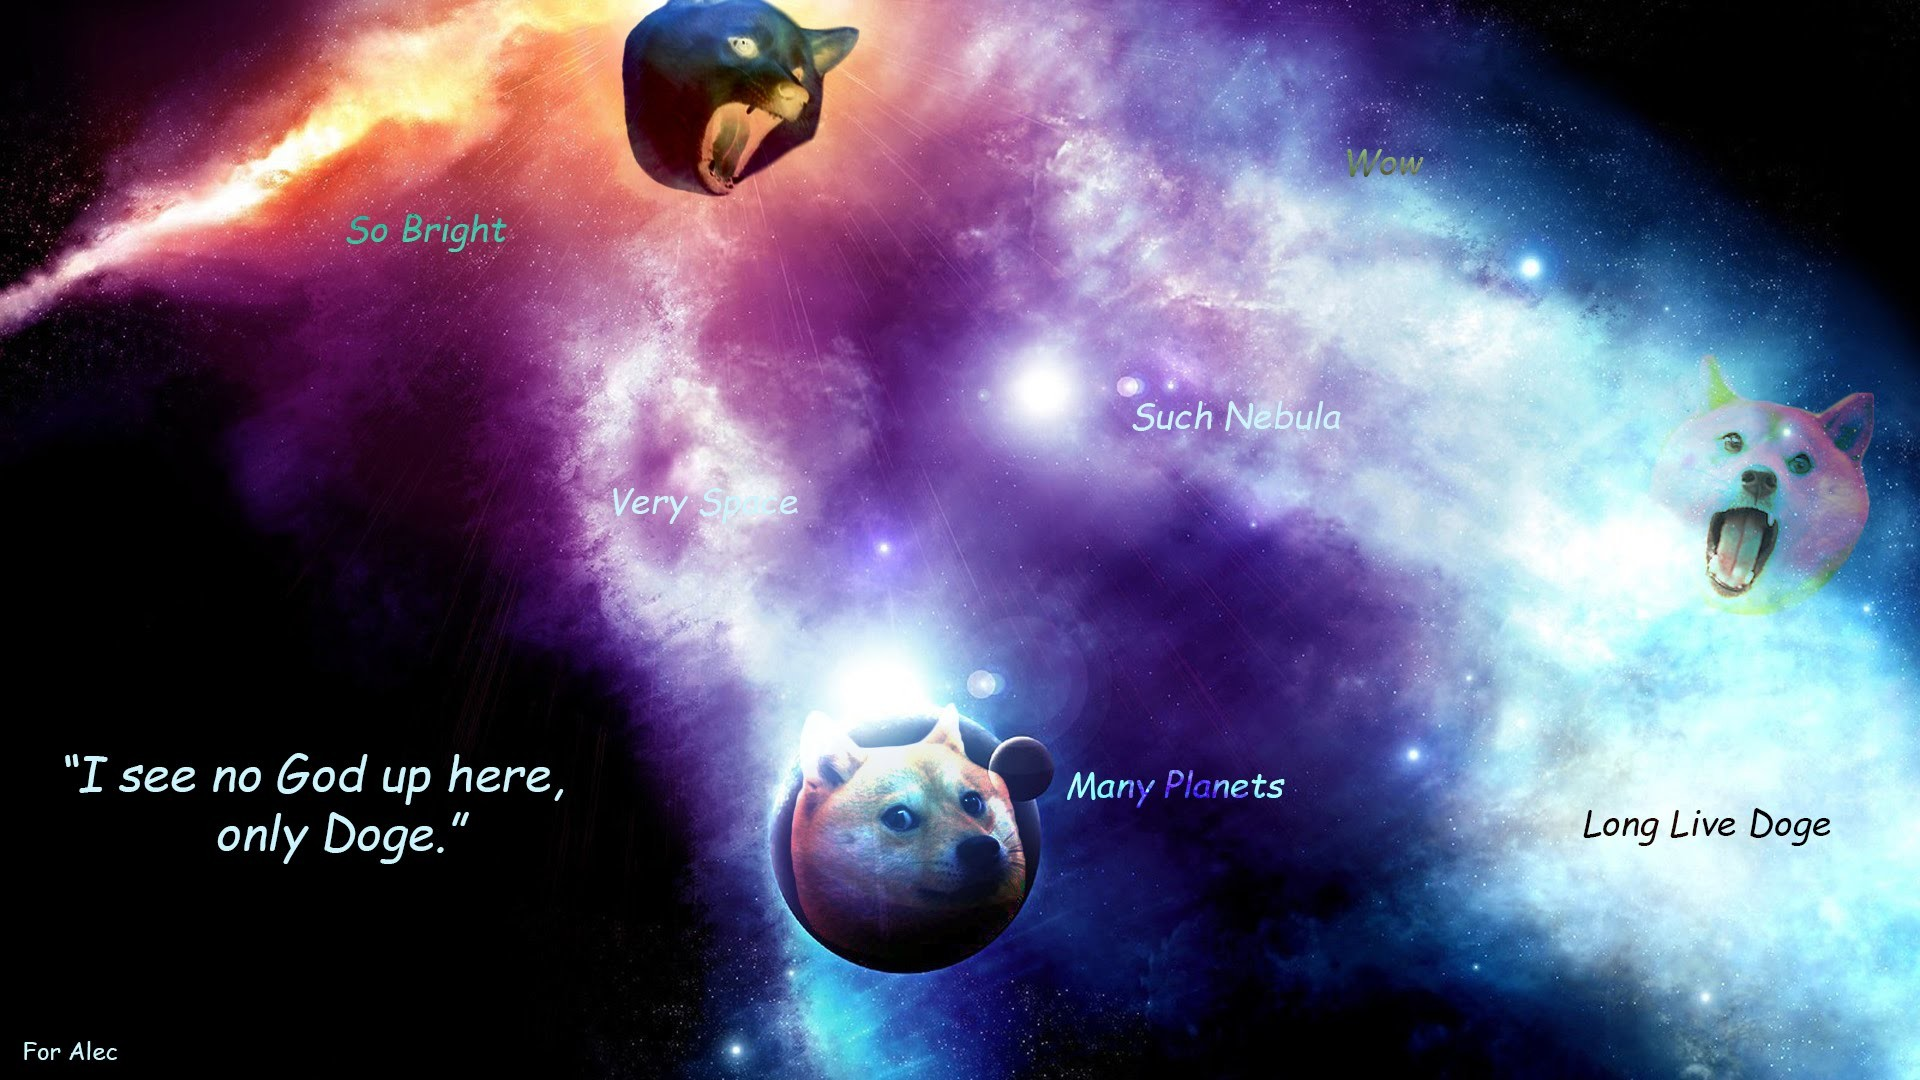 Space Ranger Doge | Doge | Know Your Meme